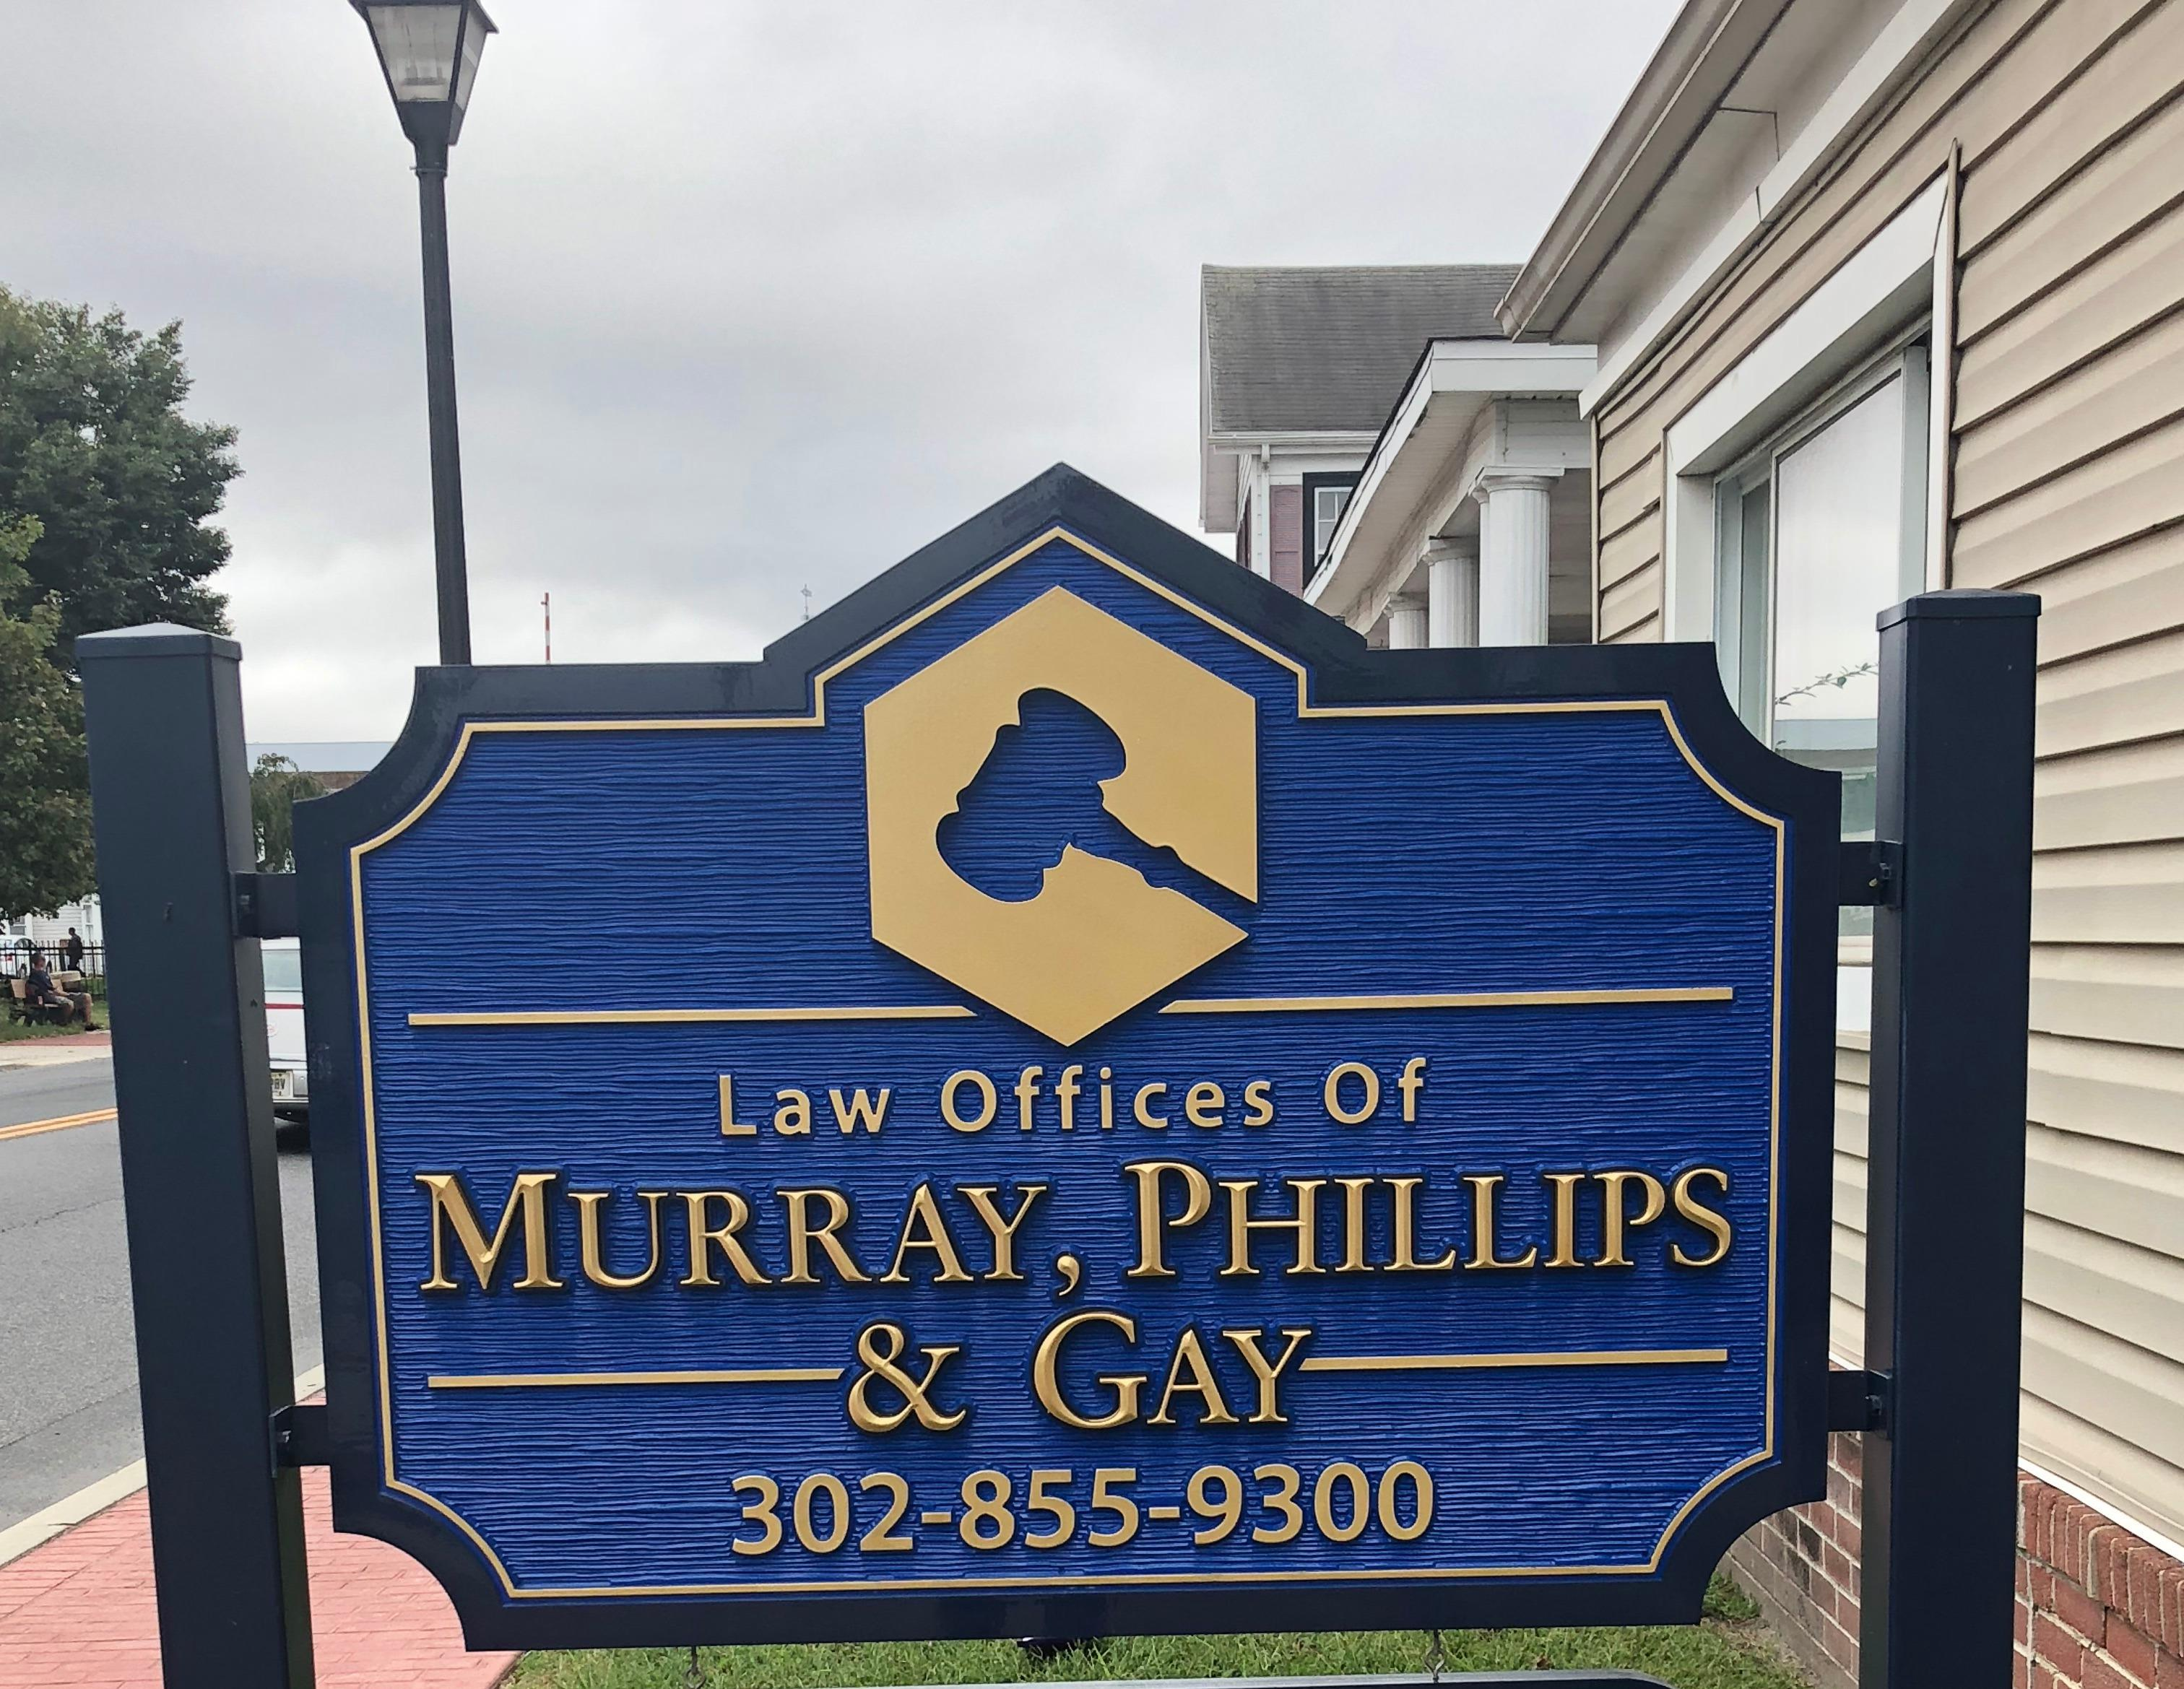 Law Offices of Murray, Phillips & Gay image 0